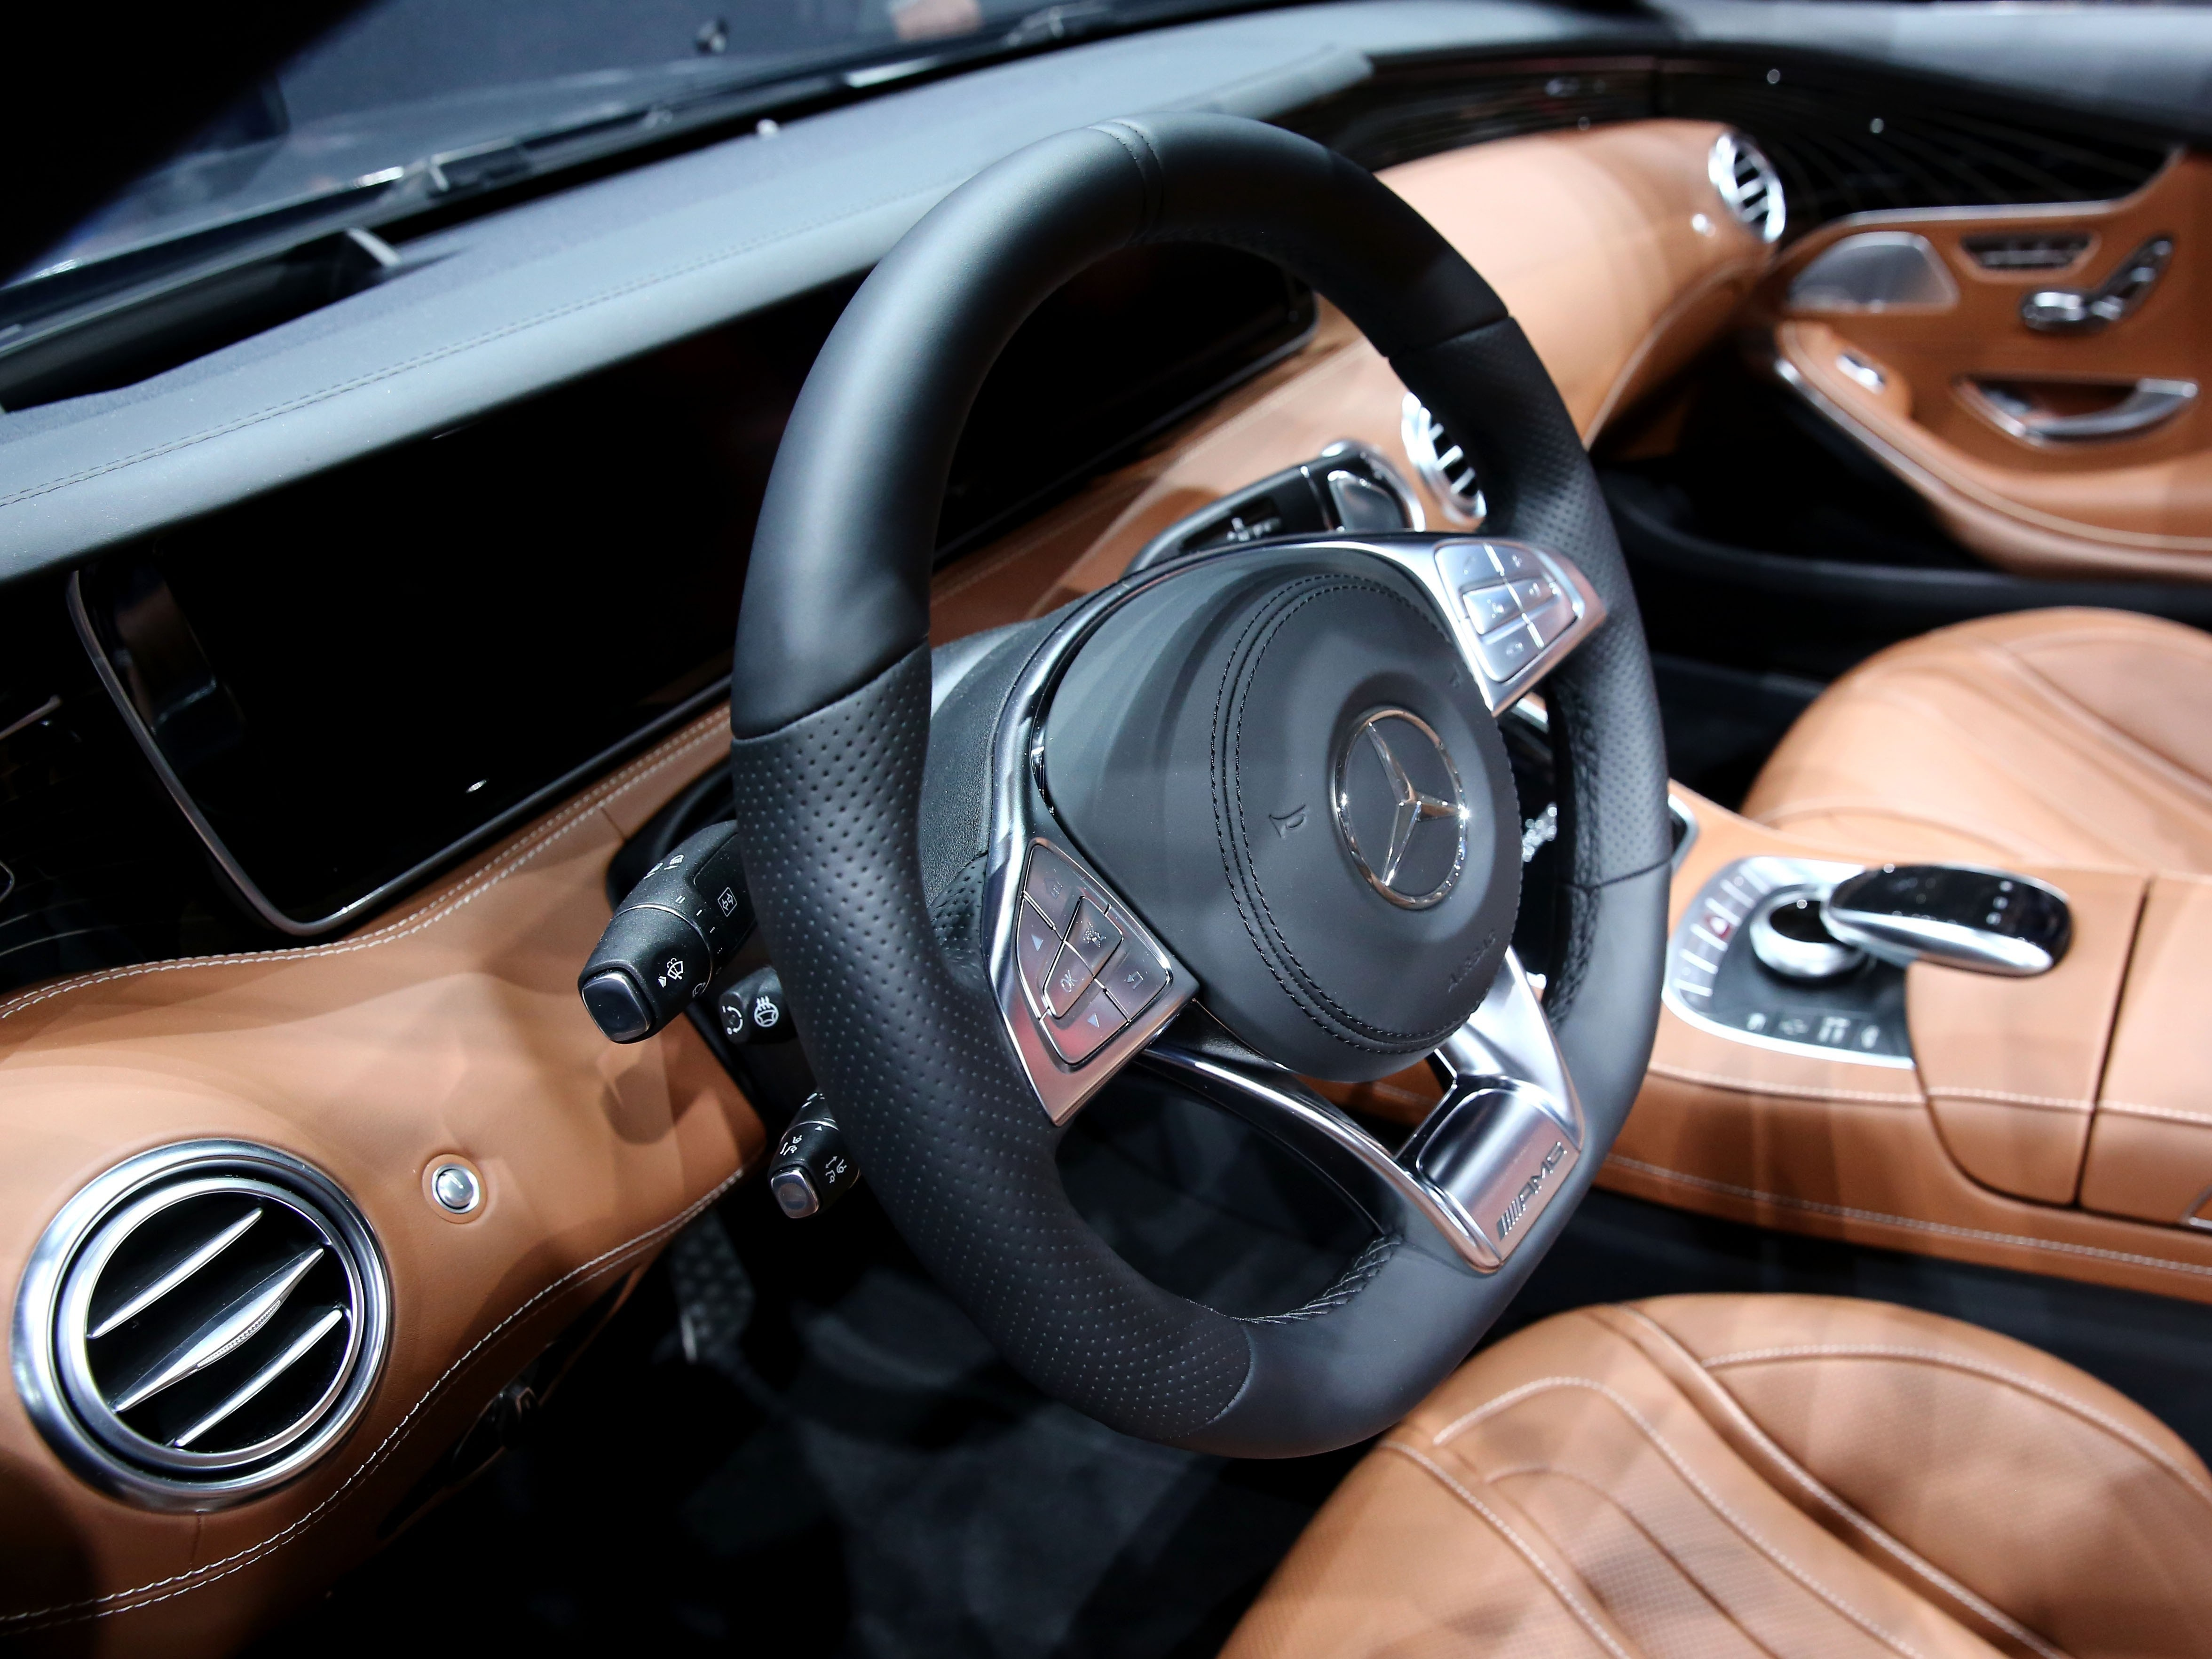 An inside view of the Mercedes-Benz AG F015 concept car during a Daimler event ahead of the IAA Frankfurt Motor Show in Frankfurt, Germany on September 15, 2015.